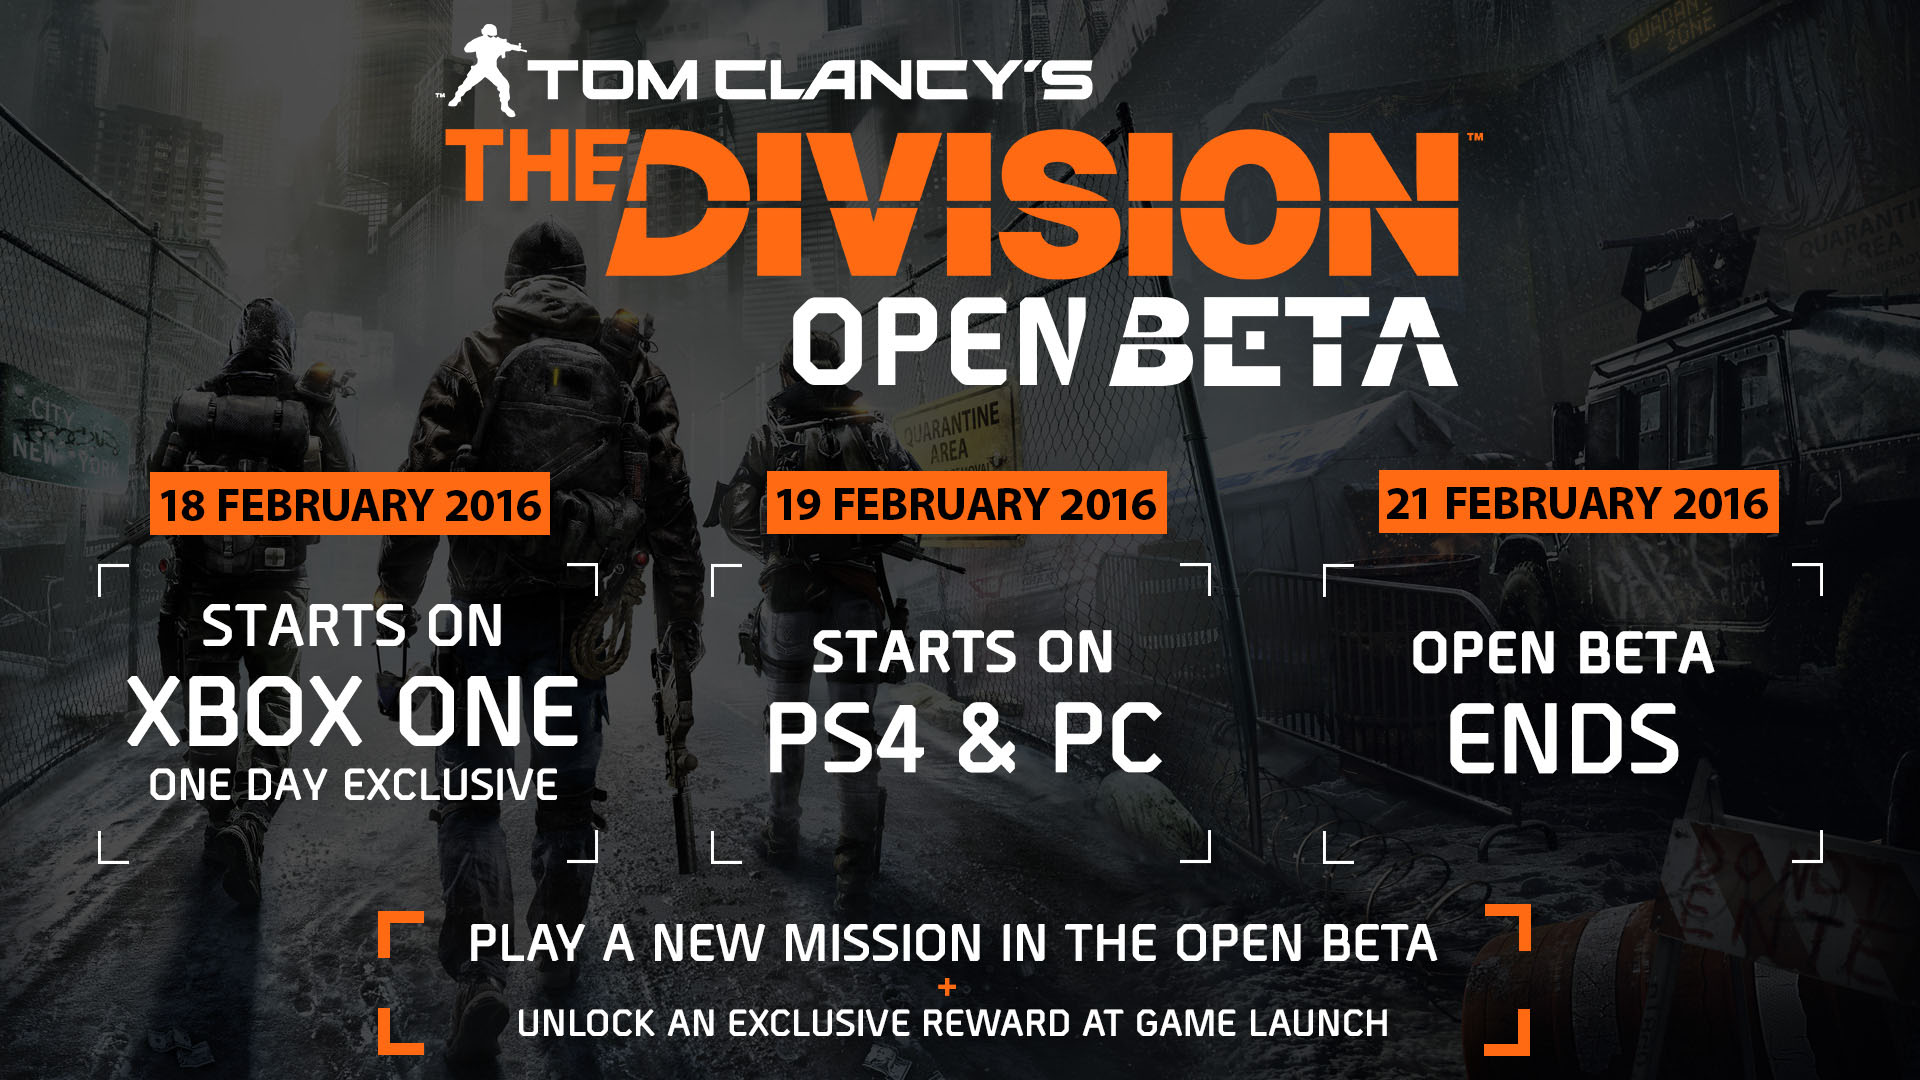 Open Beta Games